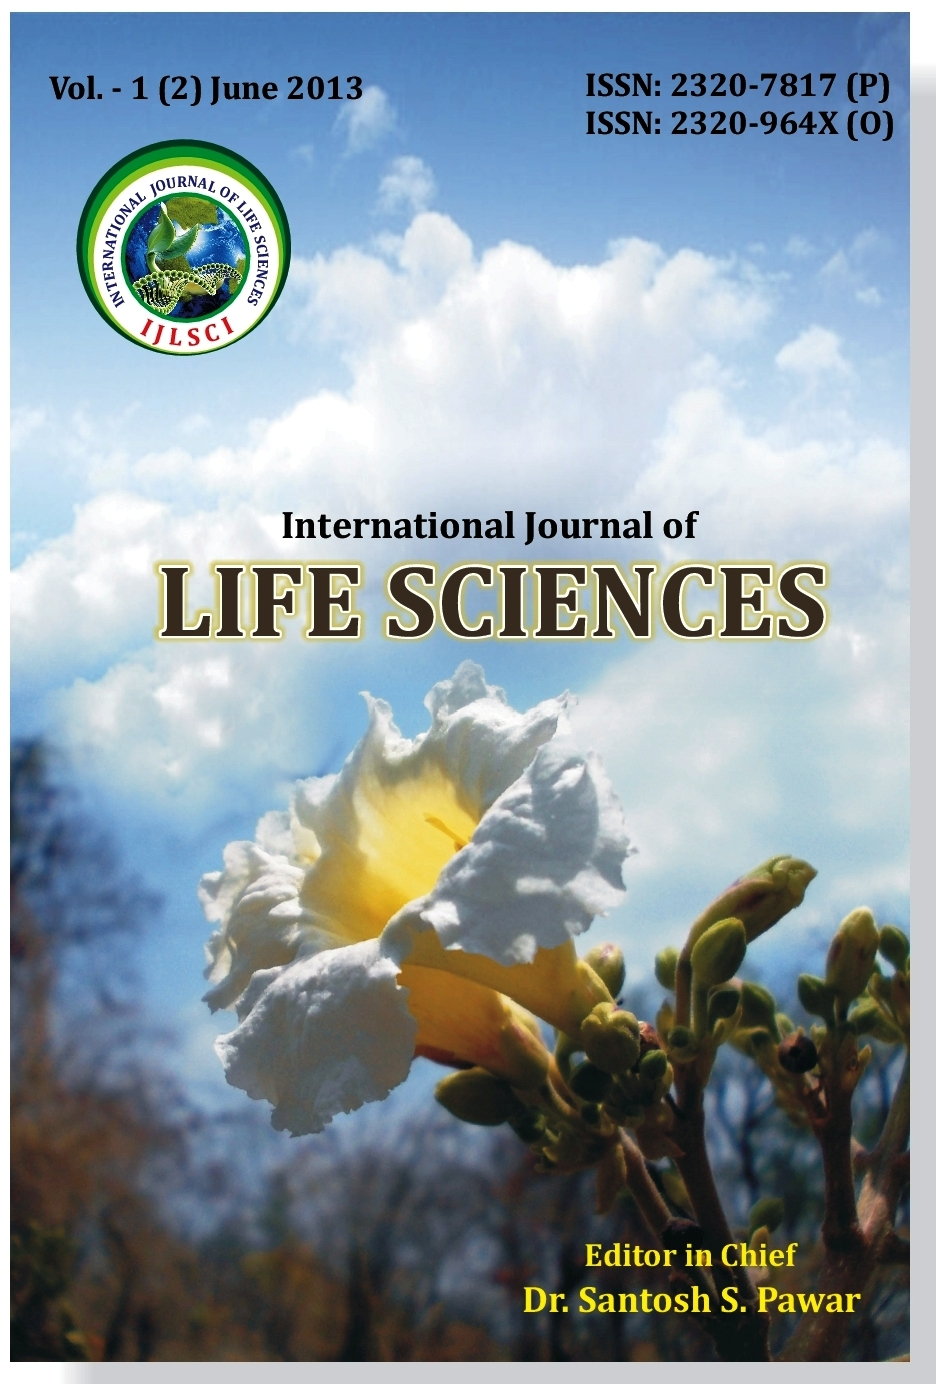 IJLSCI VOL.1 ISSUE 2 June 2013